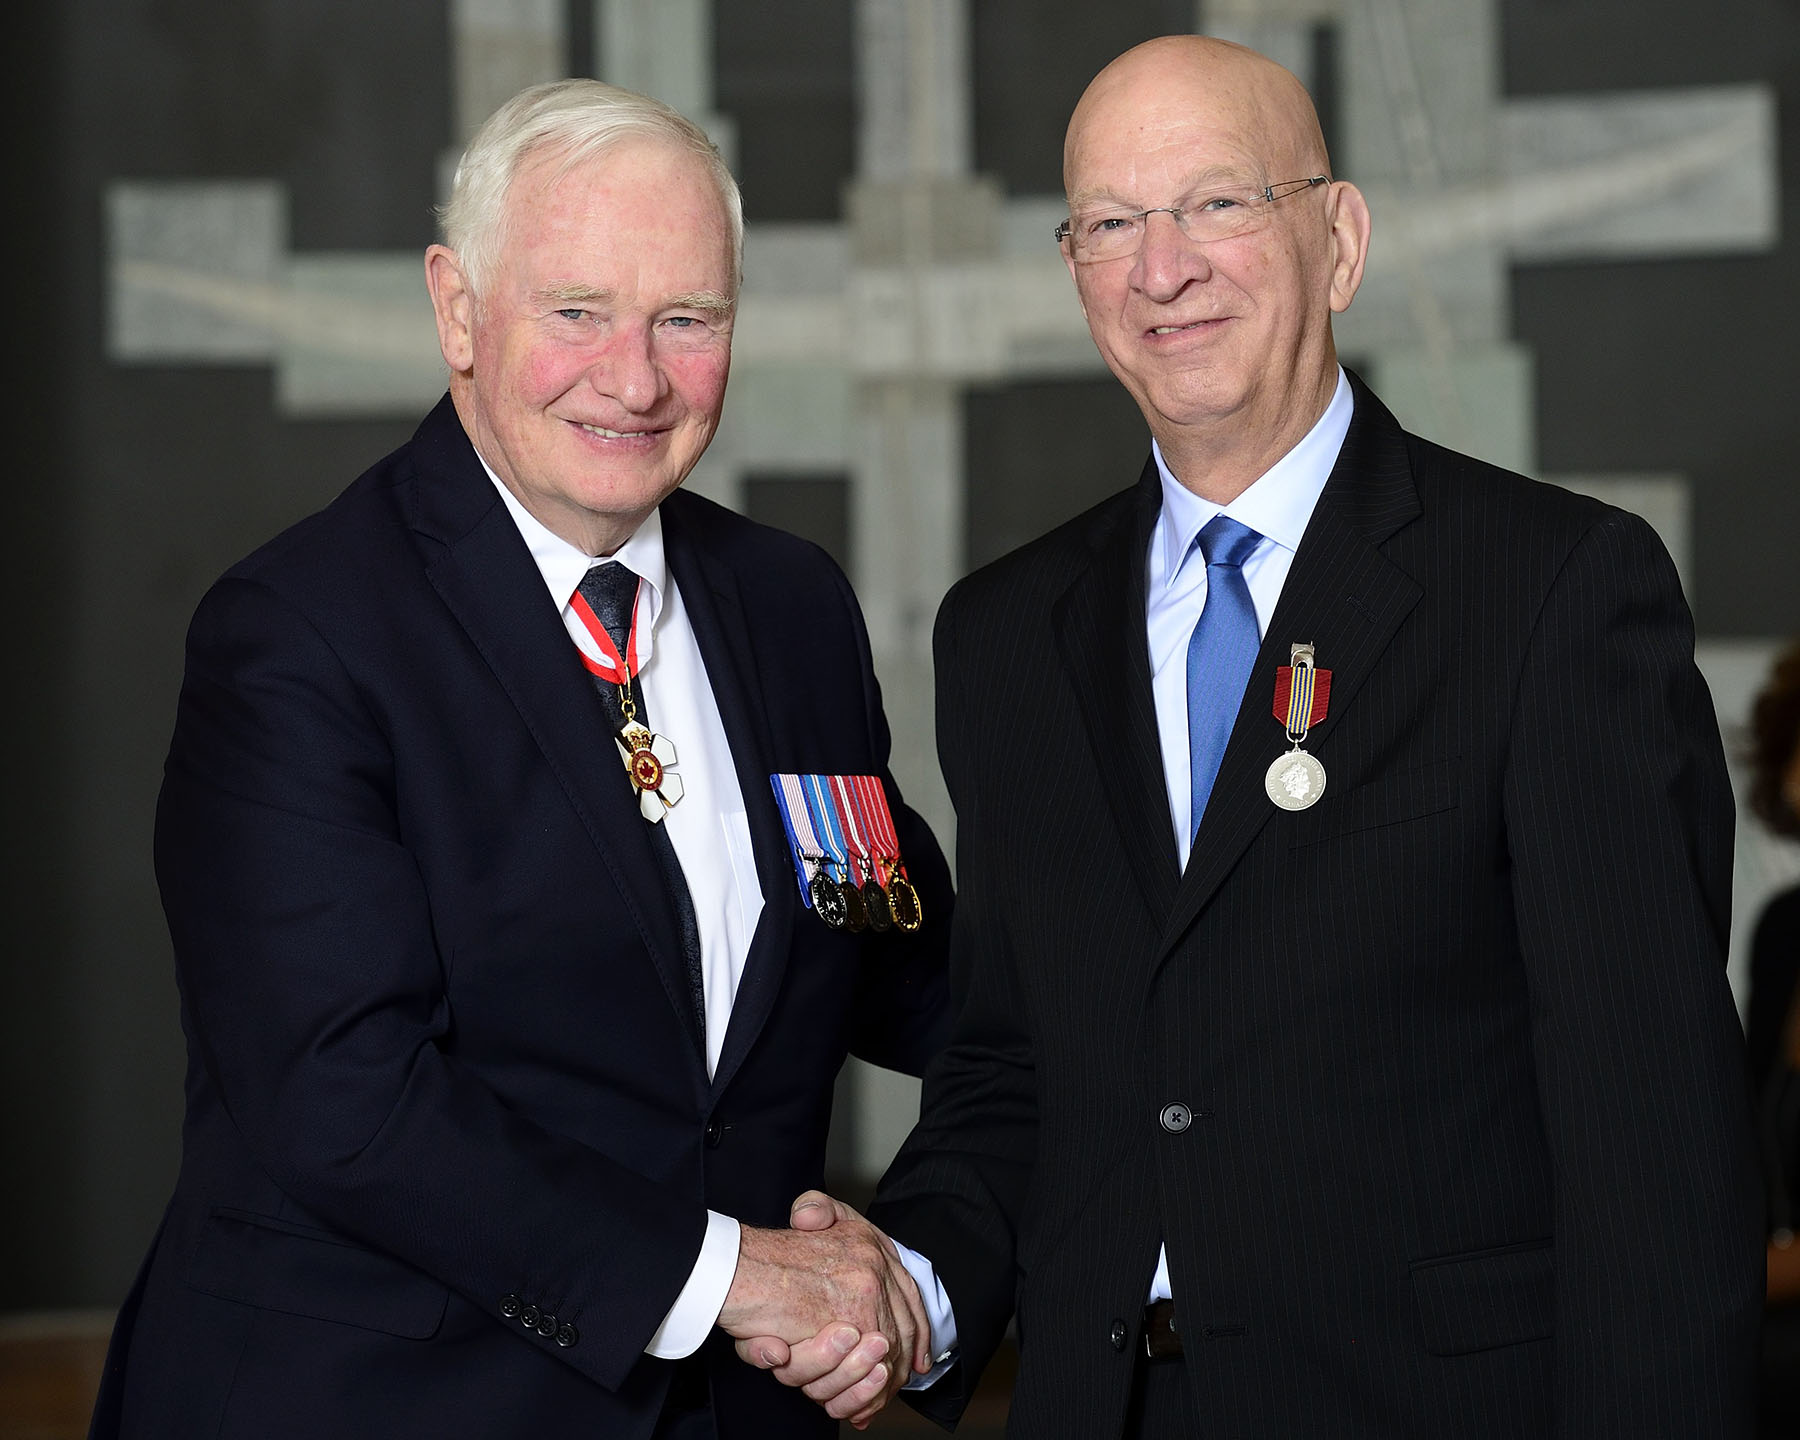 His Excellency presented André Gamache with the Sovereign's Medal for Volunteers for founding Collaboration Québec-Haïti, a non-profit organization that helps disadvantaged communities in Haiti. His efforts and the partnerships he built, were instrumental in helping the Haitian people rebuild the village of Labrousse – as well as their lives.